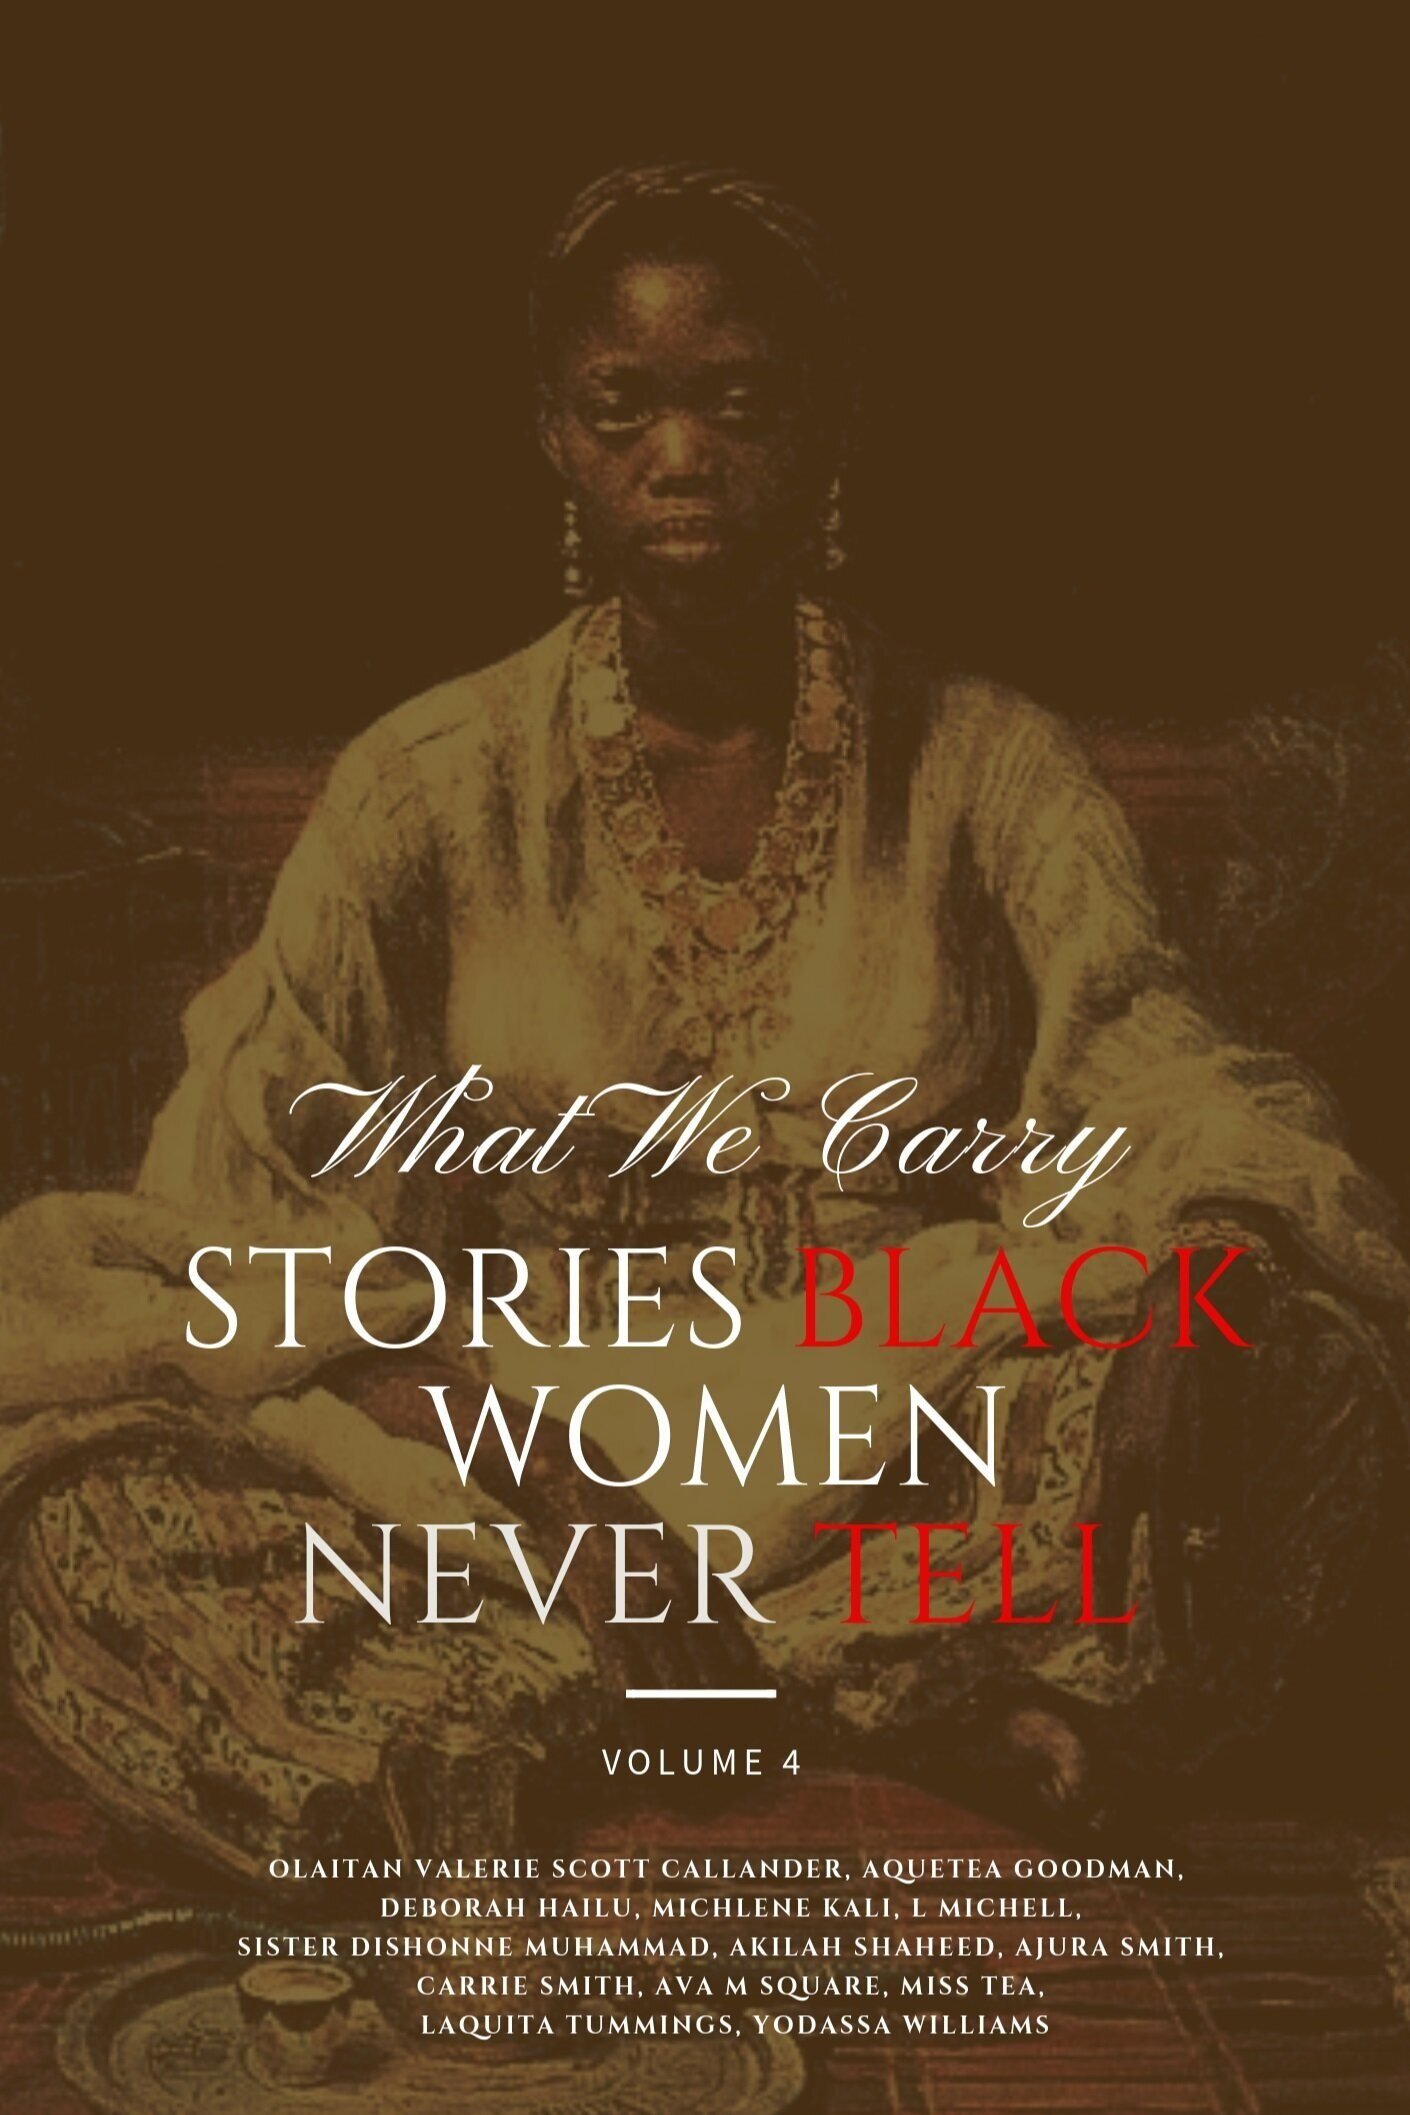 Copy of What we carry stories black women never tell.png